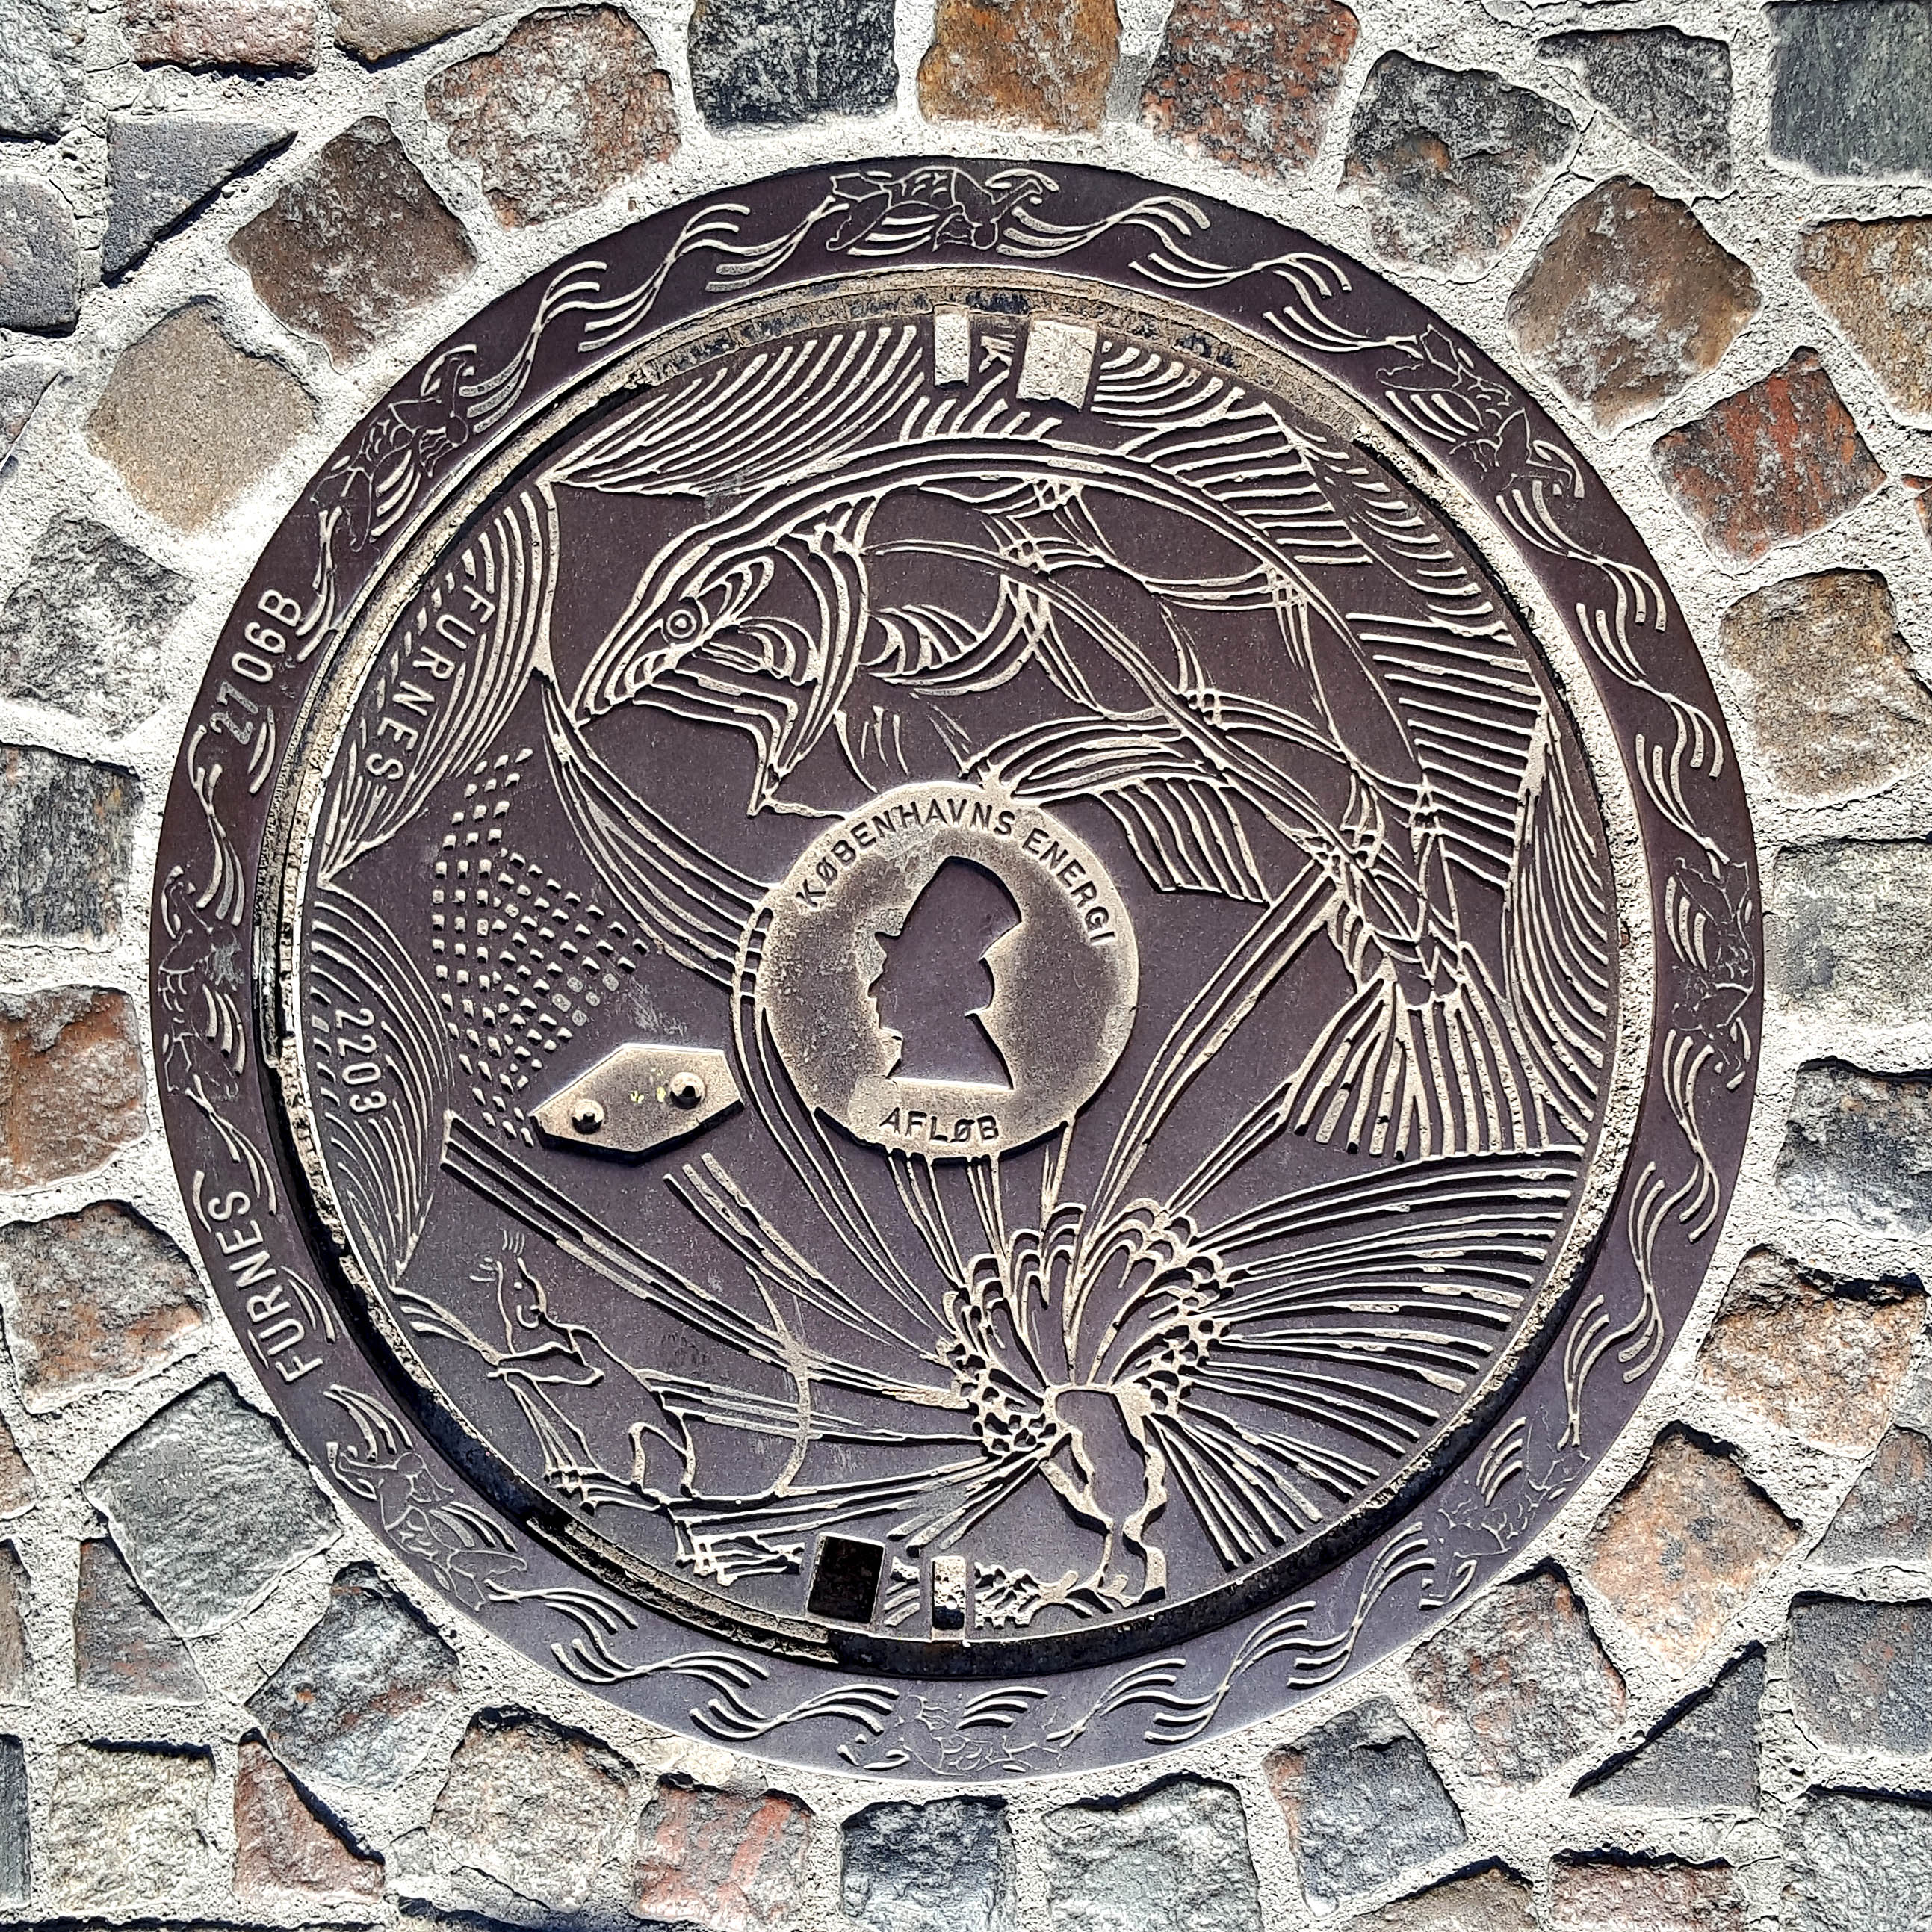 Manhole Cover, Copenhagen - Cast iron decorated with fish and peacock